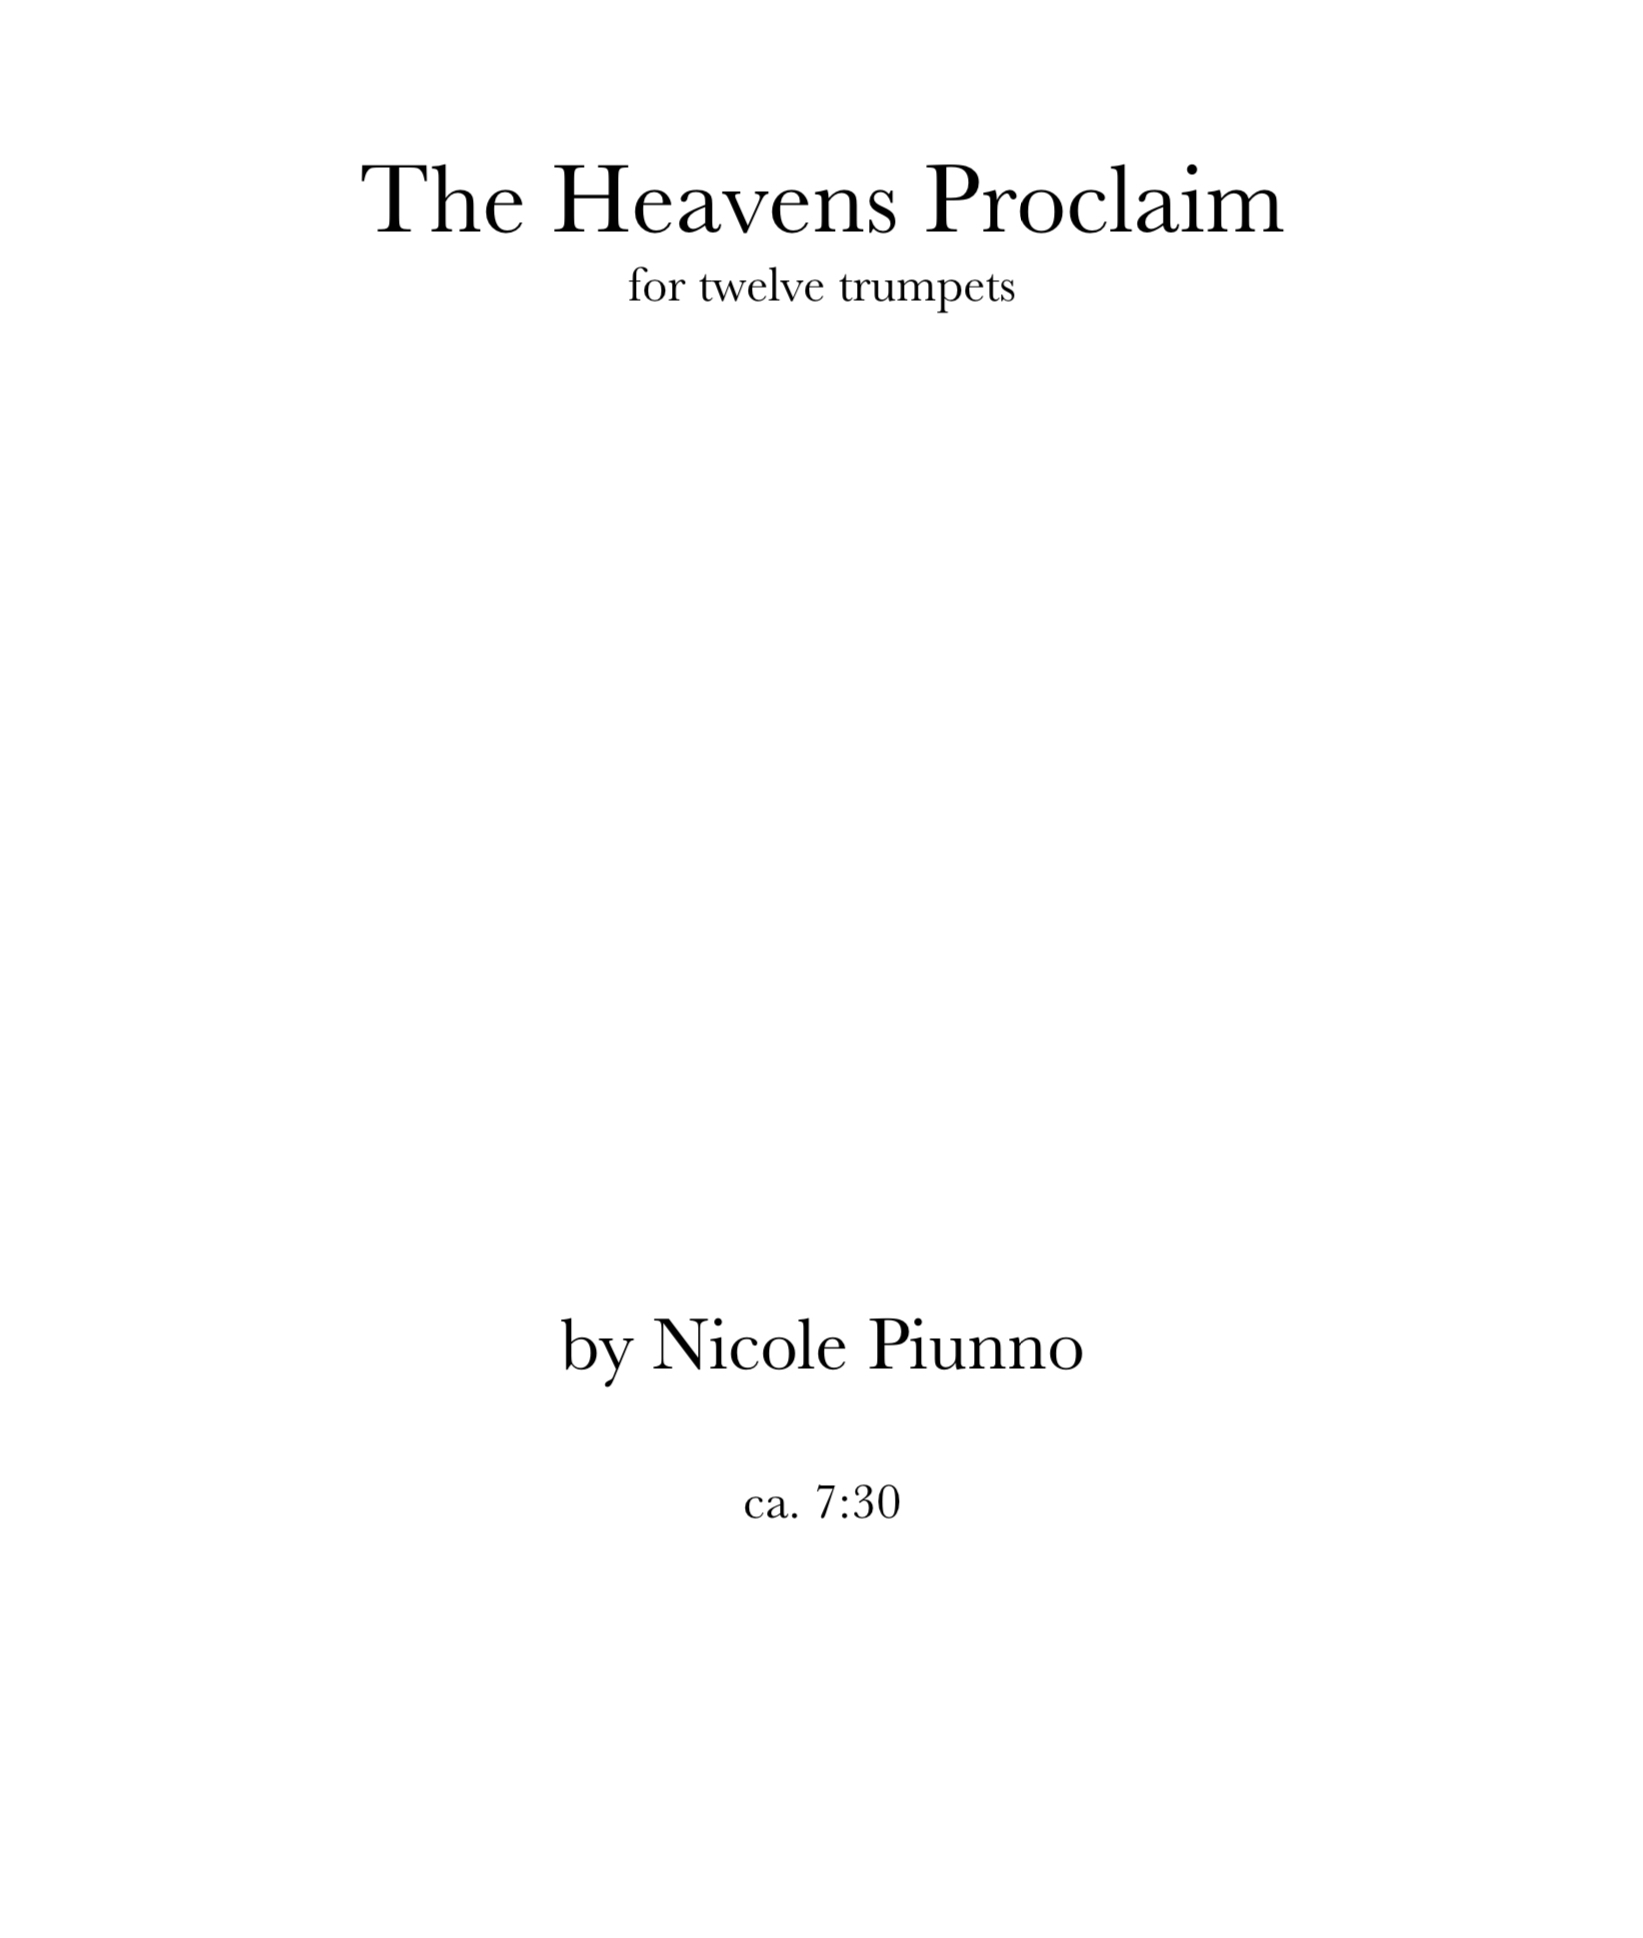 The Heavens Proclaim by Nicole Piunno